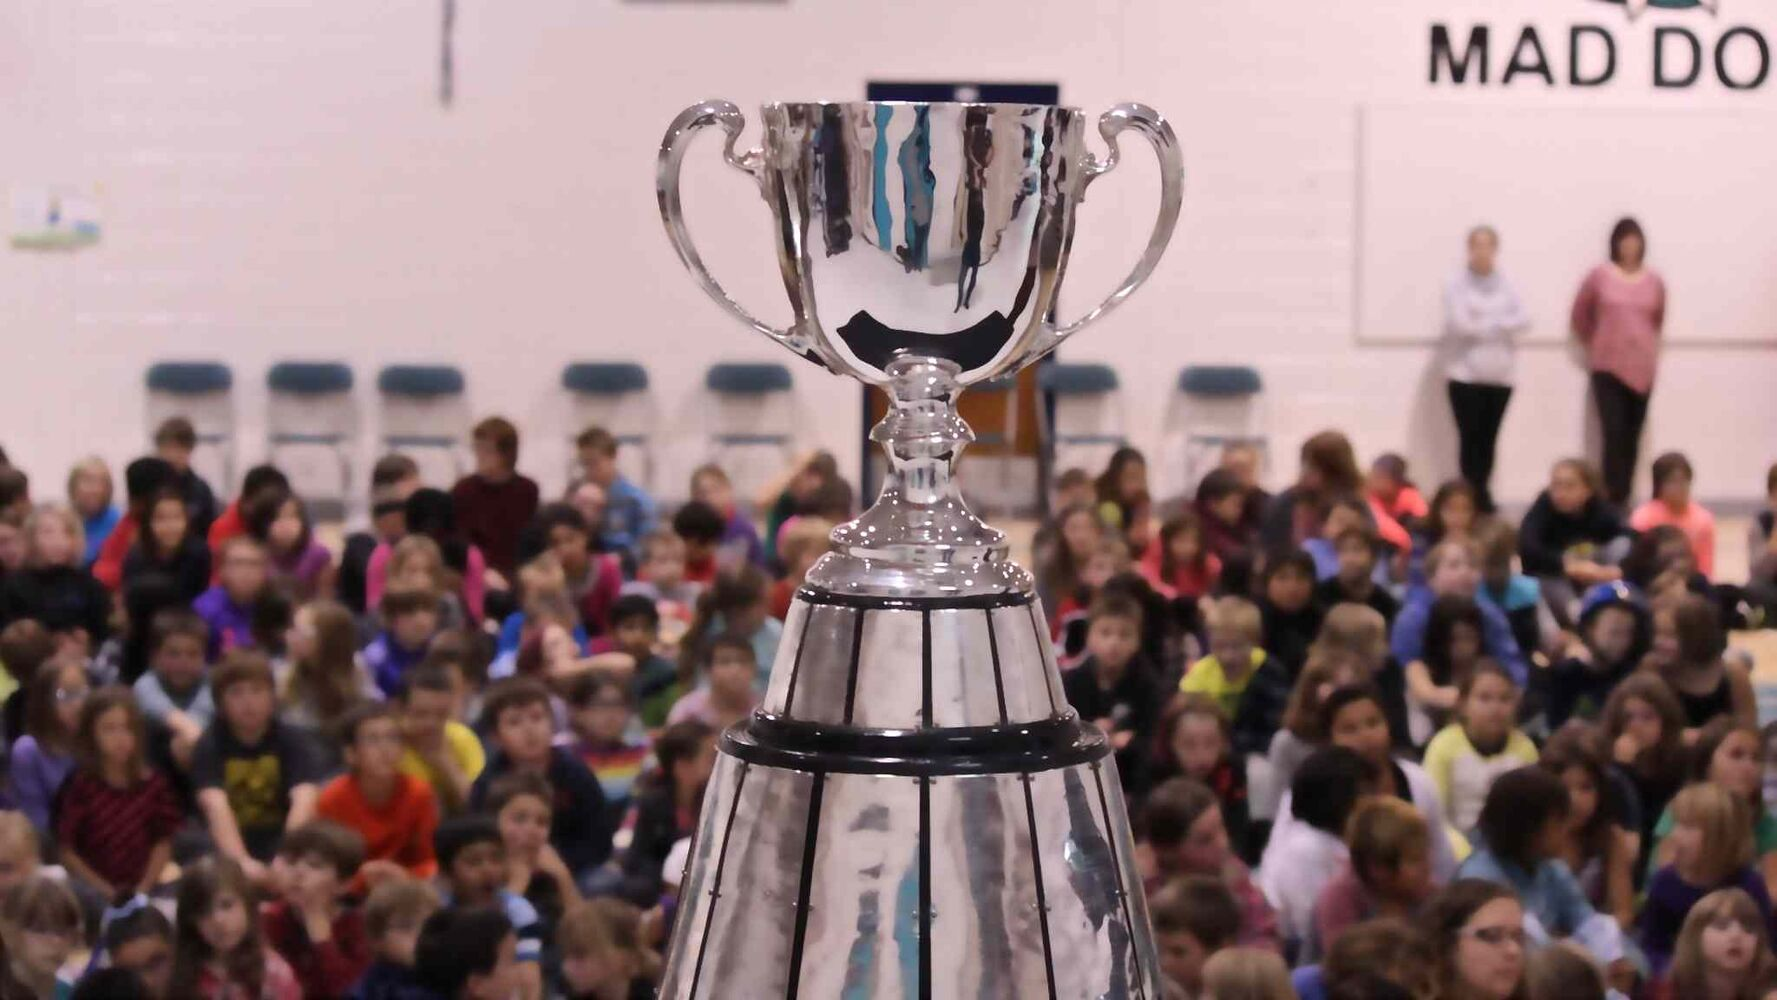 The Grey Cup made its way to McIsaac School in Flin Flon. The trophy was in town as part of an eight-day tour through northern Manitoba to help promote the Grey Cup game in Winnipeg this year. (Jeff Hamilton / Winnipeg Free Press)